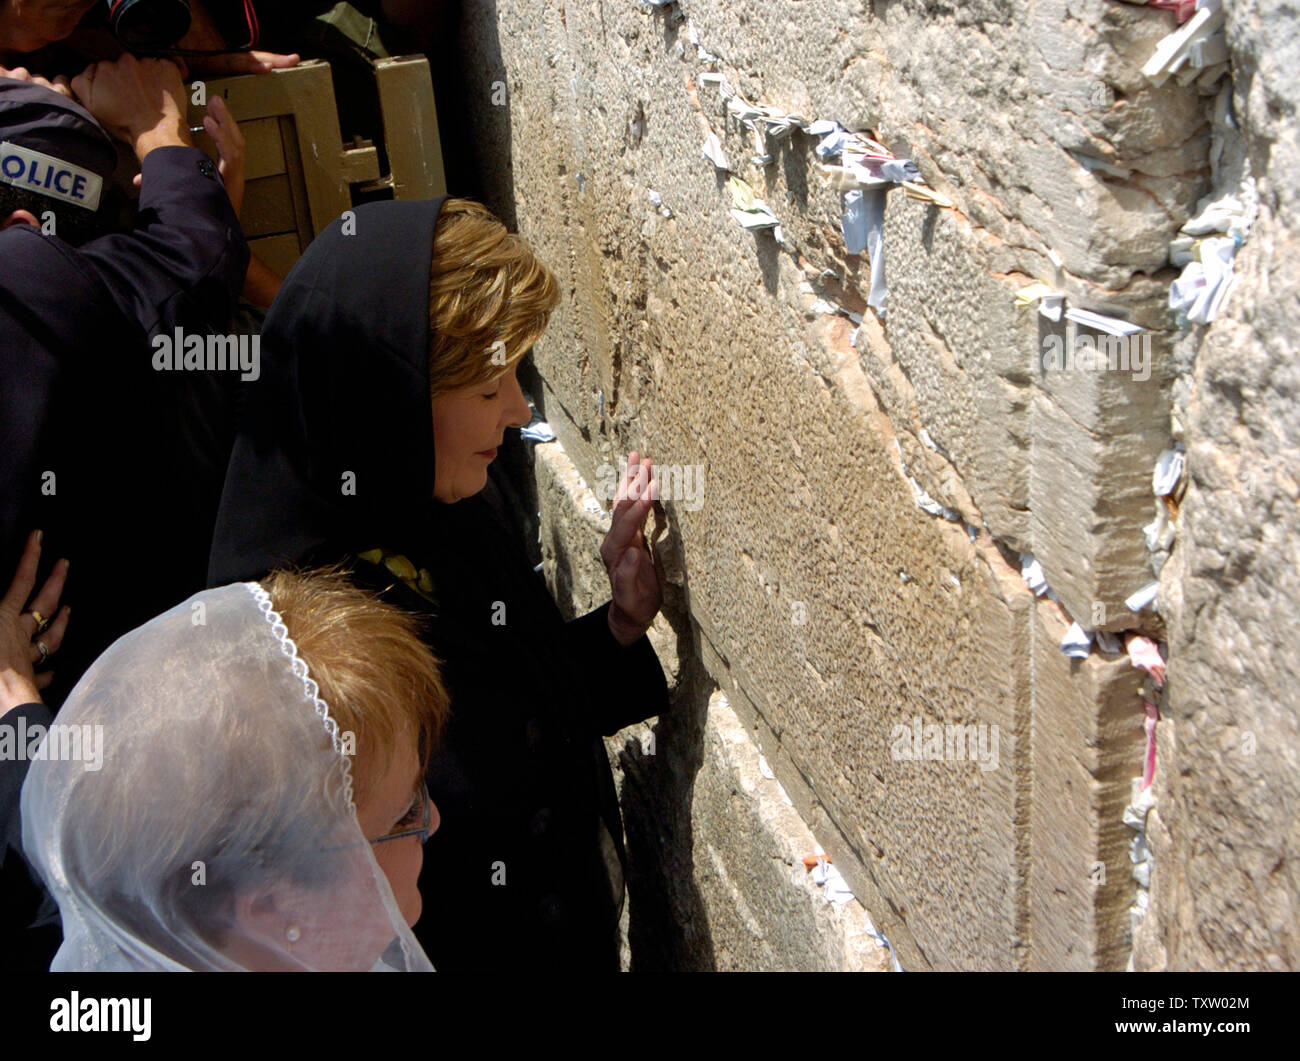 Israeli First Lady Gila Katsav stands beside US First Lady Laura Bush while she prays at  the Western Wall, Judaism's holiest site, in the Old City of Jerusalem, May 22, 2005. Mrs. Bush is visiting Israel as part of a six day tour in the region, aimed at advancing women's rights in the Middle East. (UPI Photo/Debbie Hill) - Stock Image